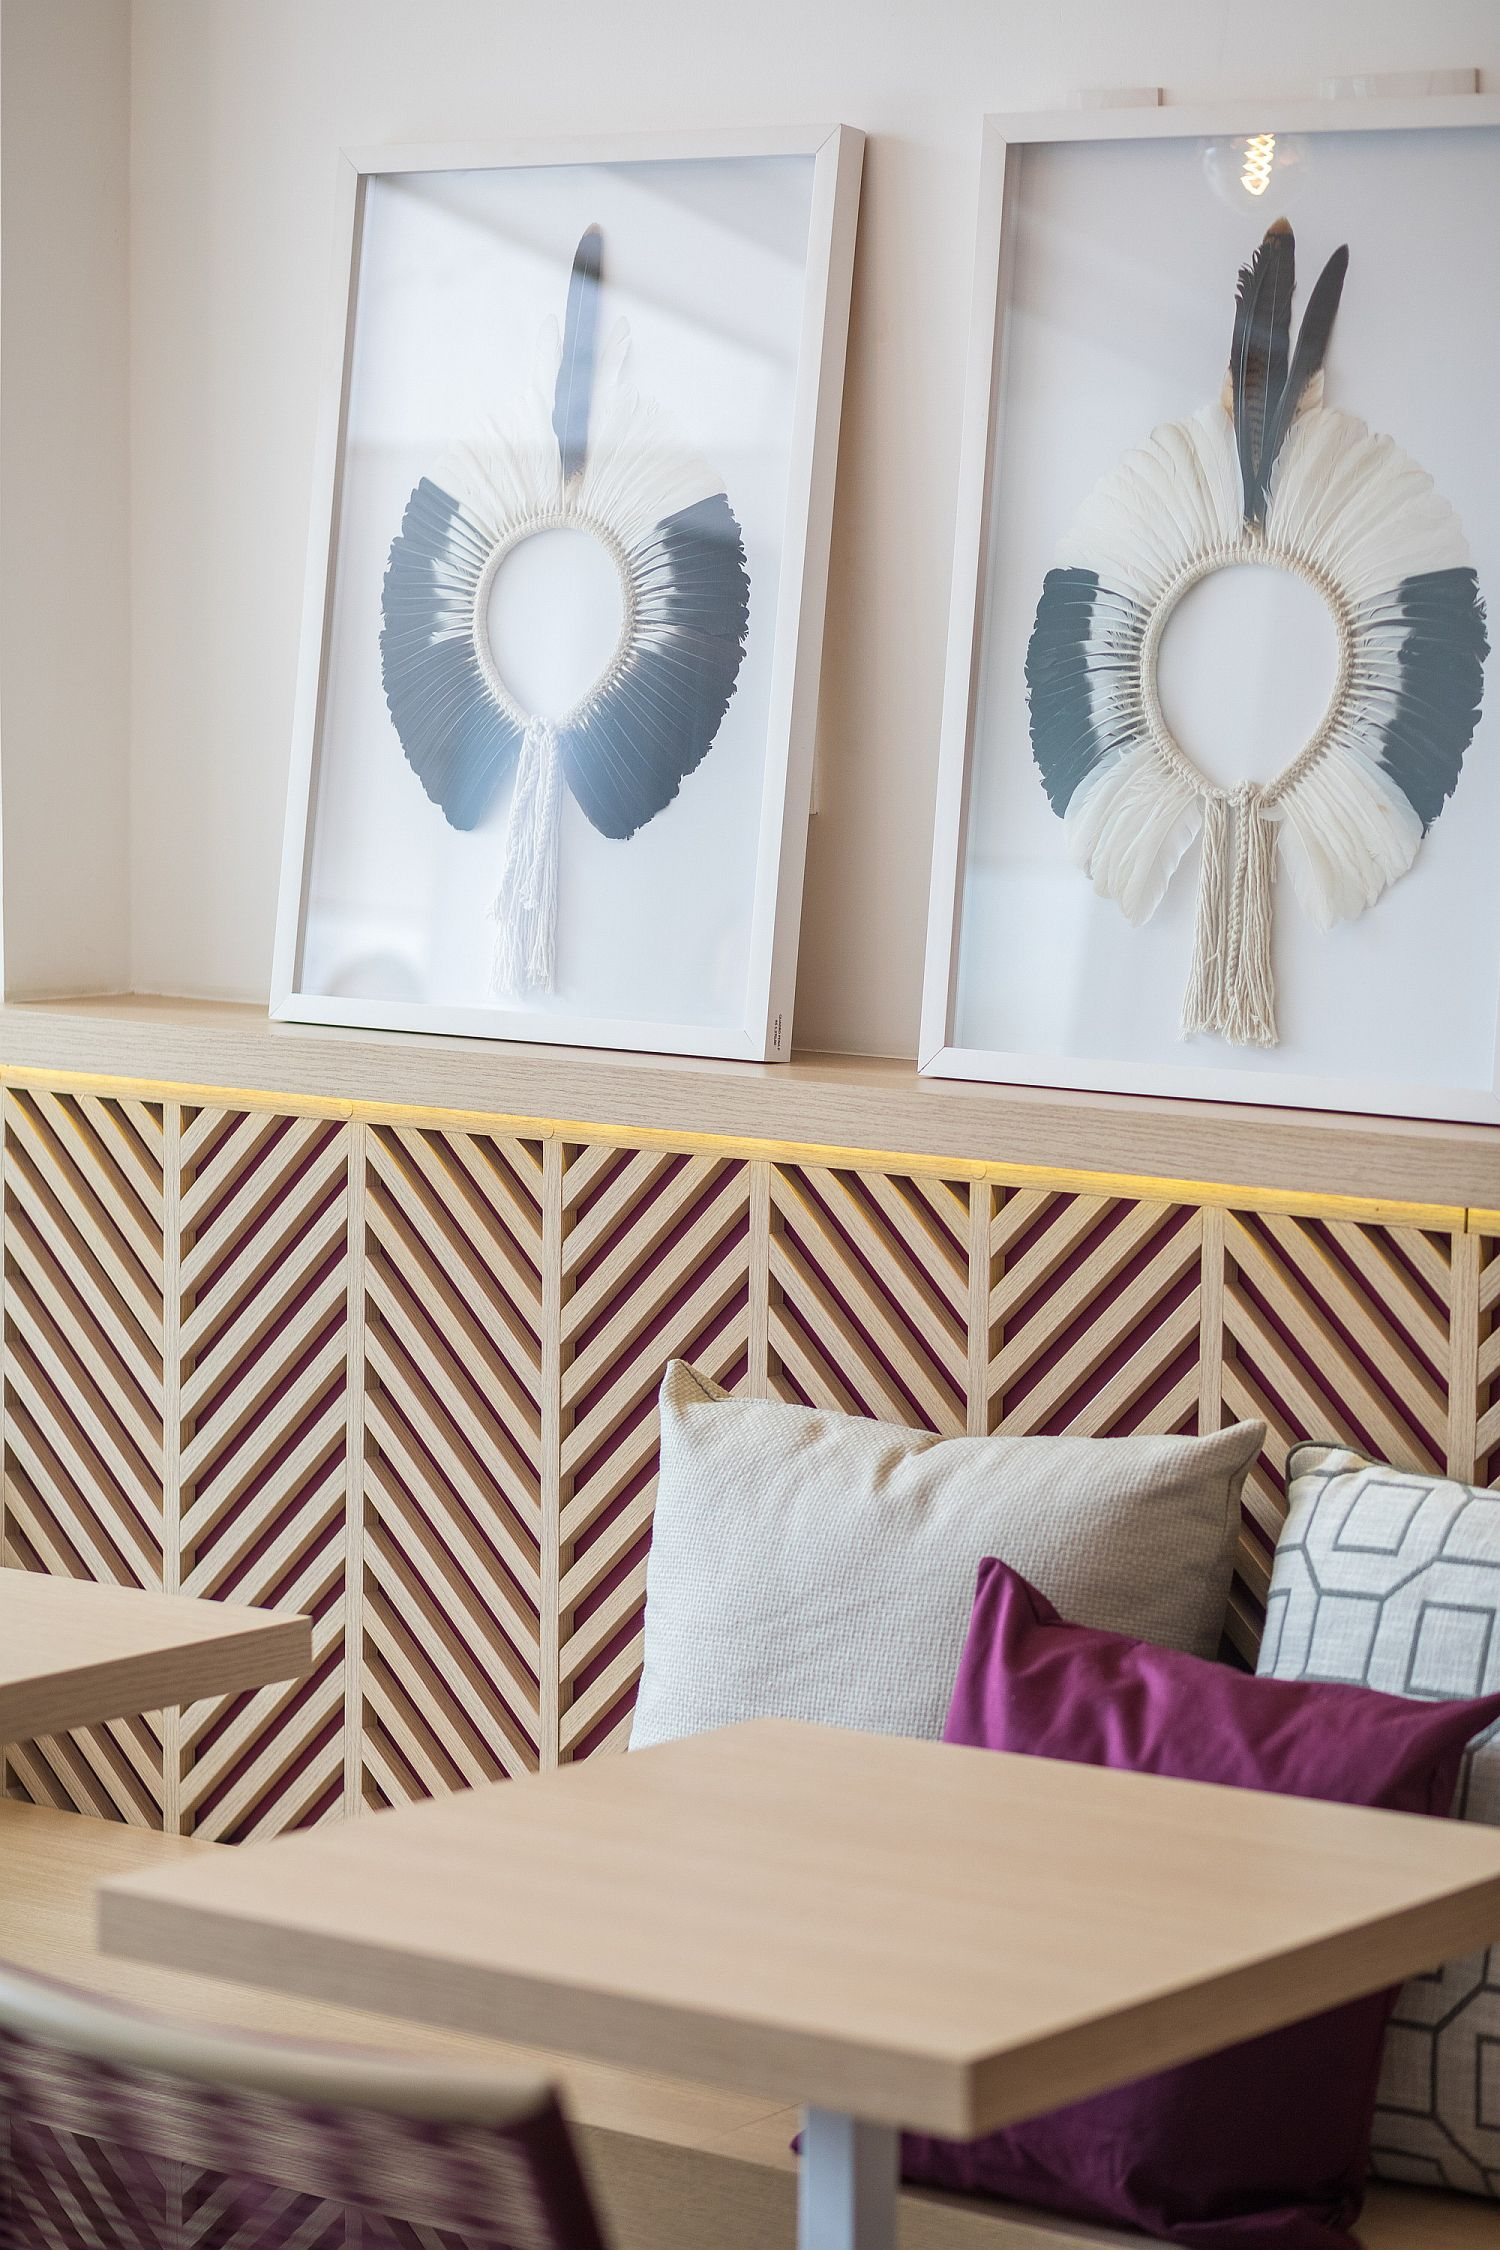 Art work adds fun pattern to the diner without altering the color scheme